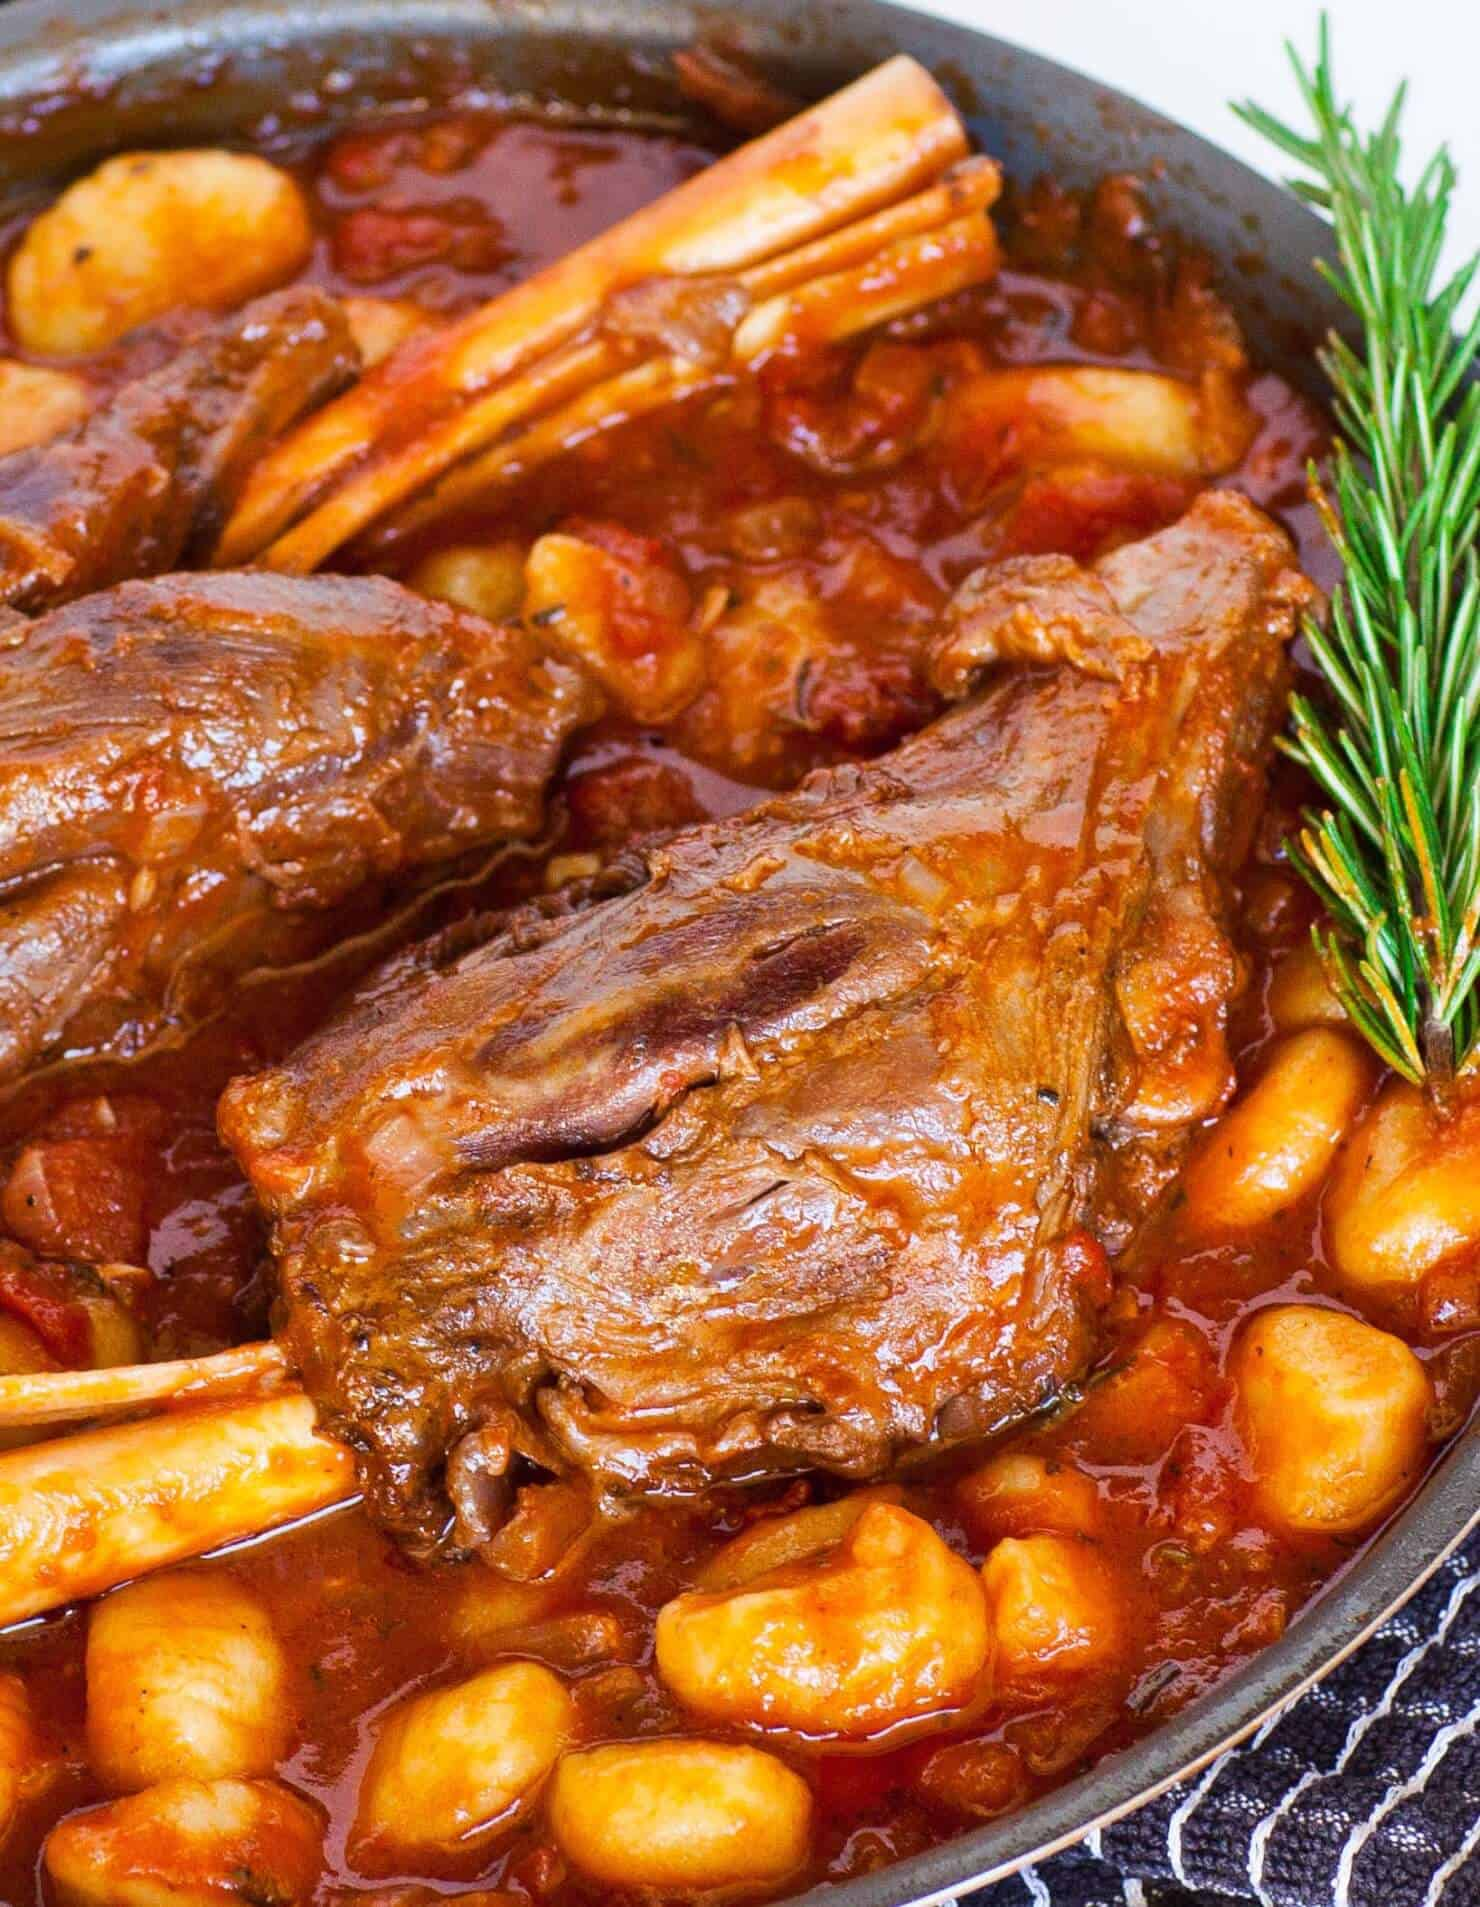 lamb shanks braised in tomato sauce with gnocchi